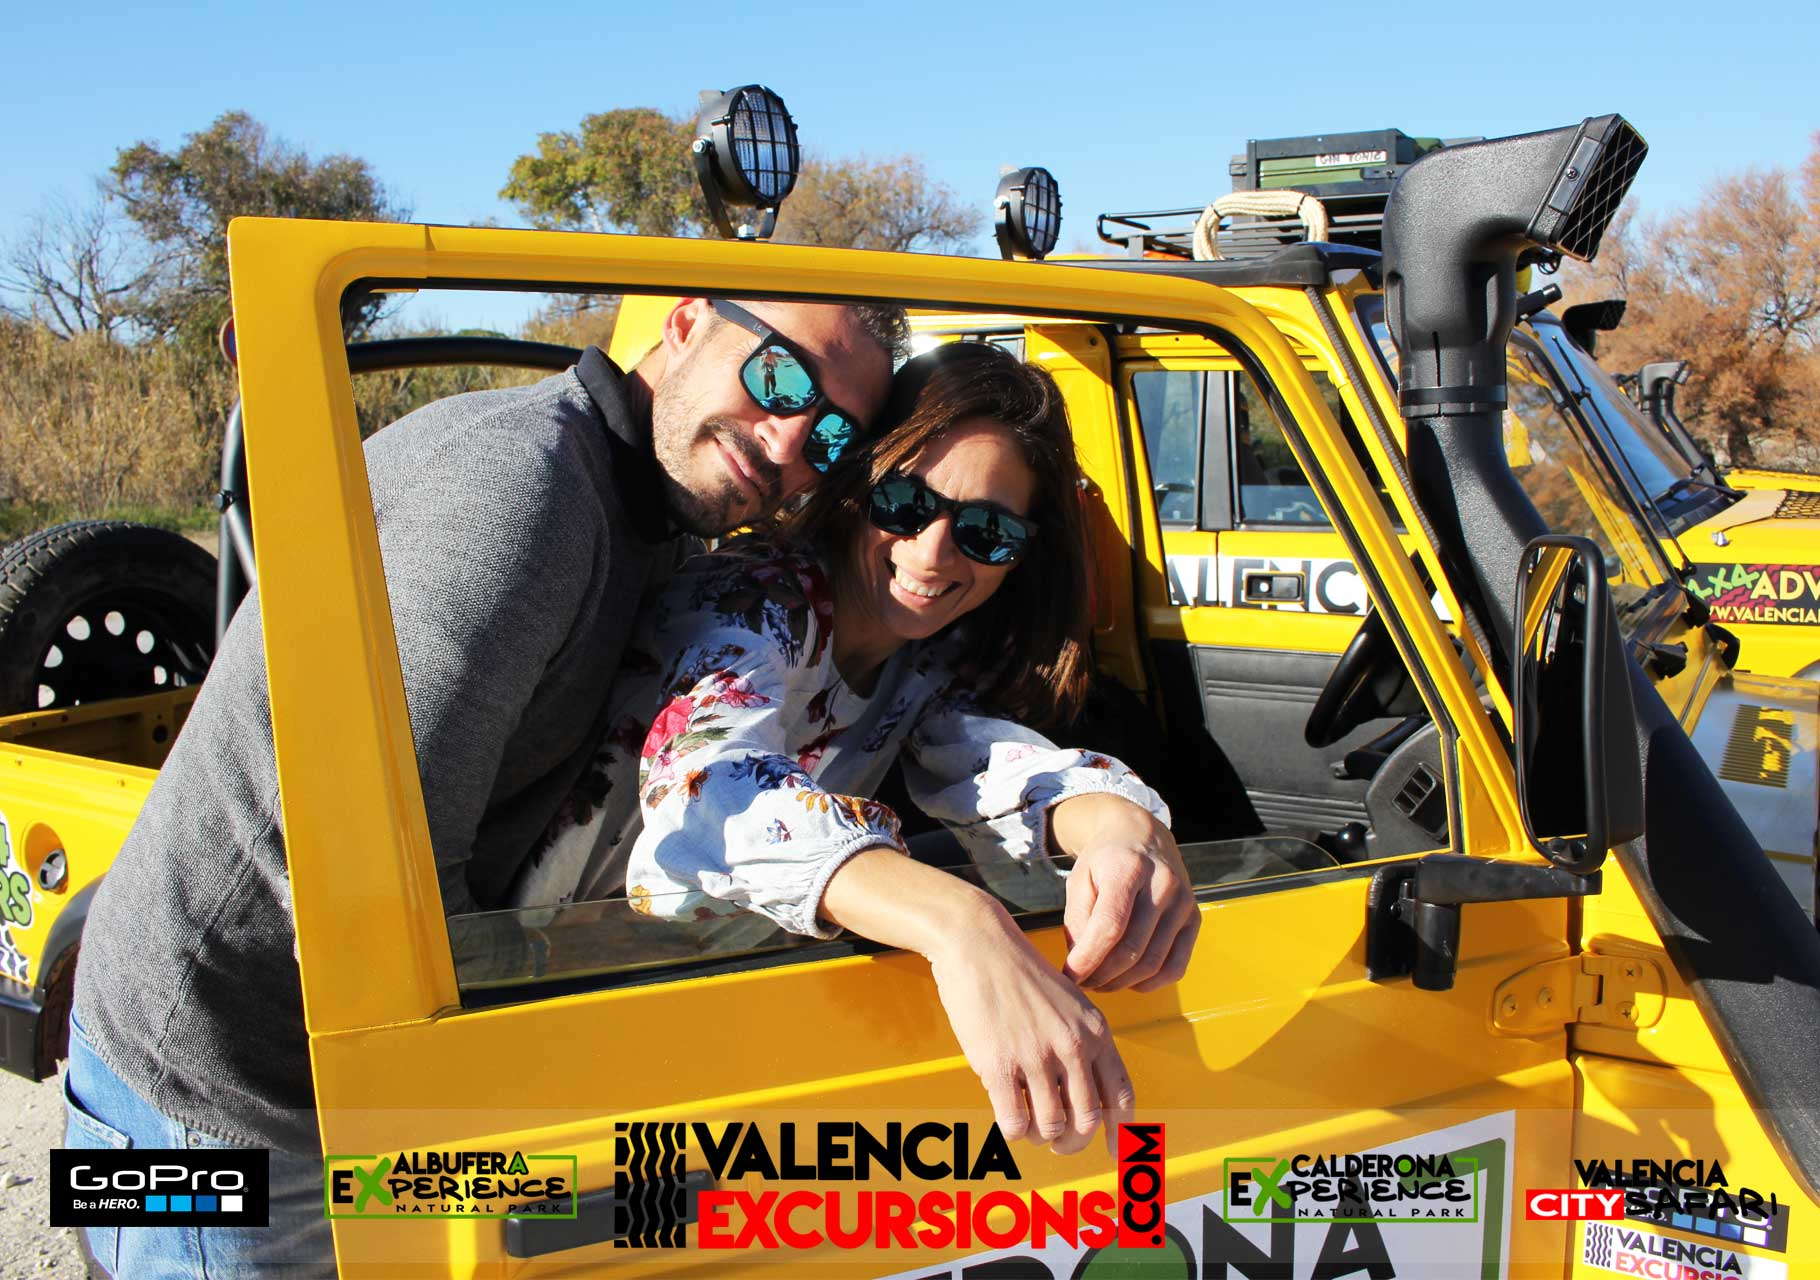 Excursions and tour for couples in Valencia. Albufera Experience 4x4 tour with boat trip included at Albufera Lake www.valenciaexcursions.com